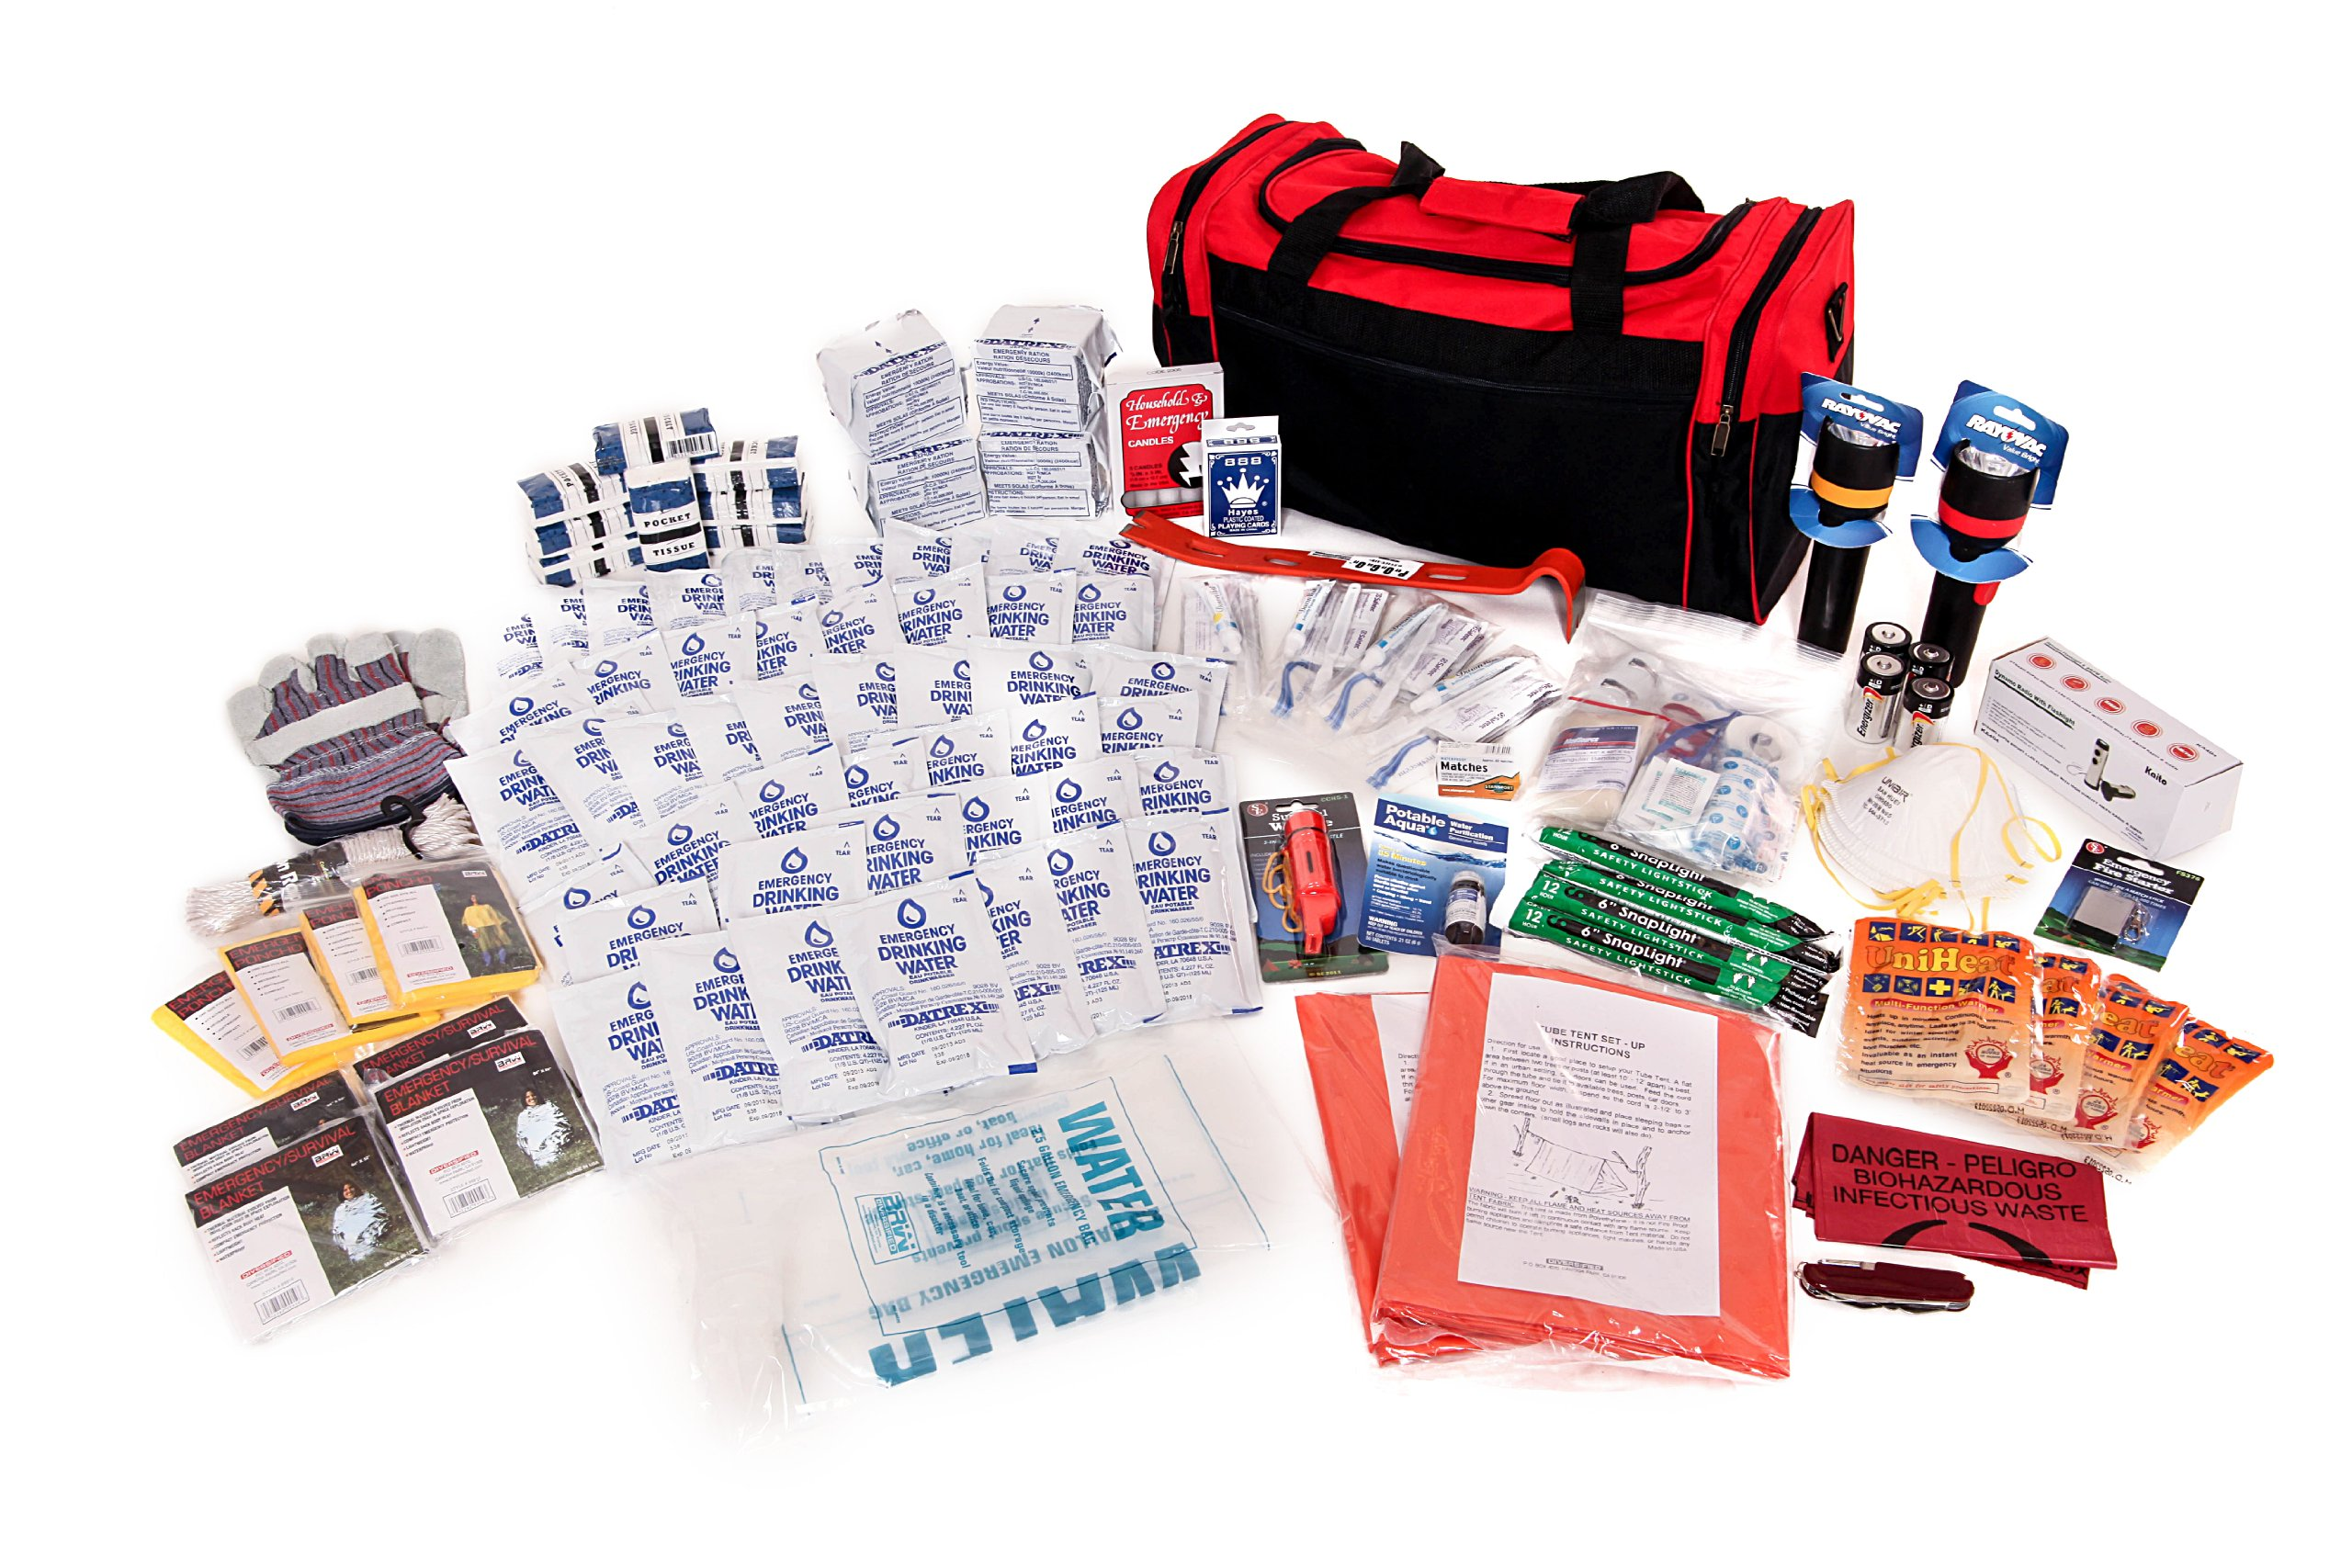 4 Person Survival Kit Deluxe - Prepare For Earthquake, Evacuation, Emergency Disaster Preparedness 72-Hour Kits for Home, Work, or Auto by Survival Prep Warehouse